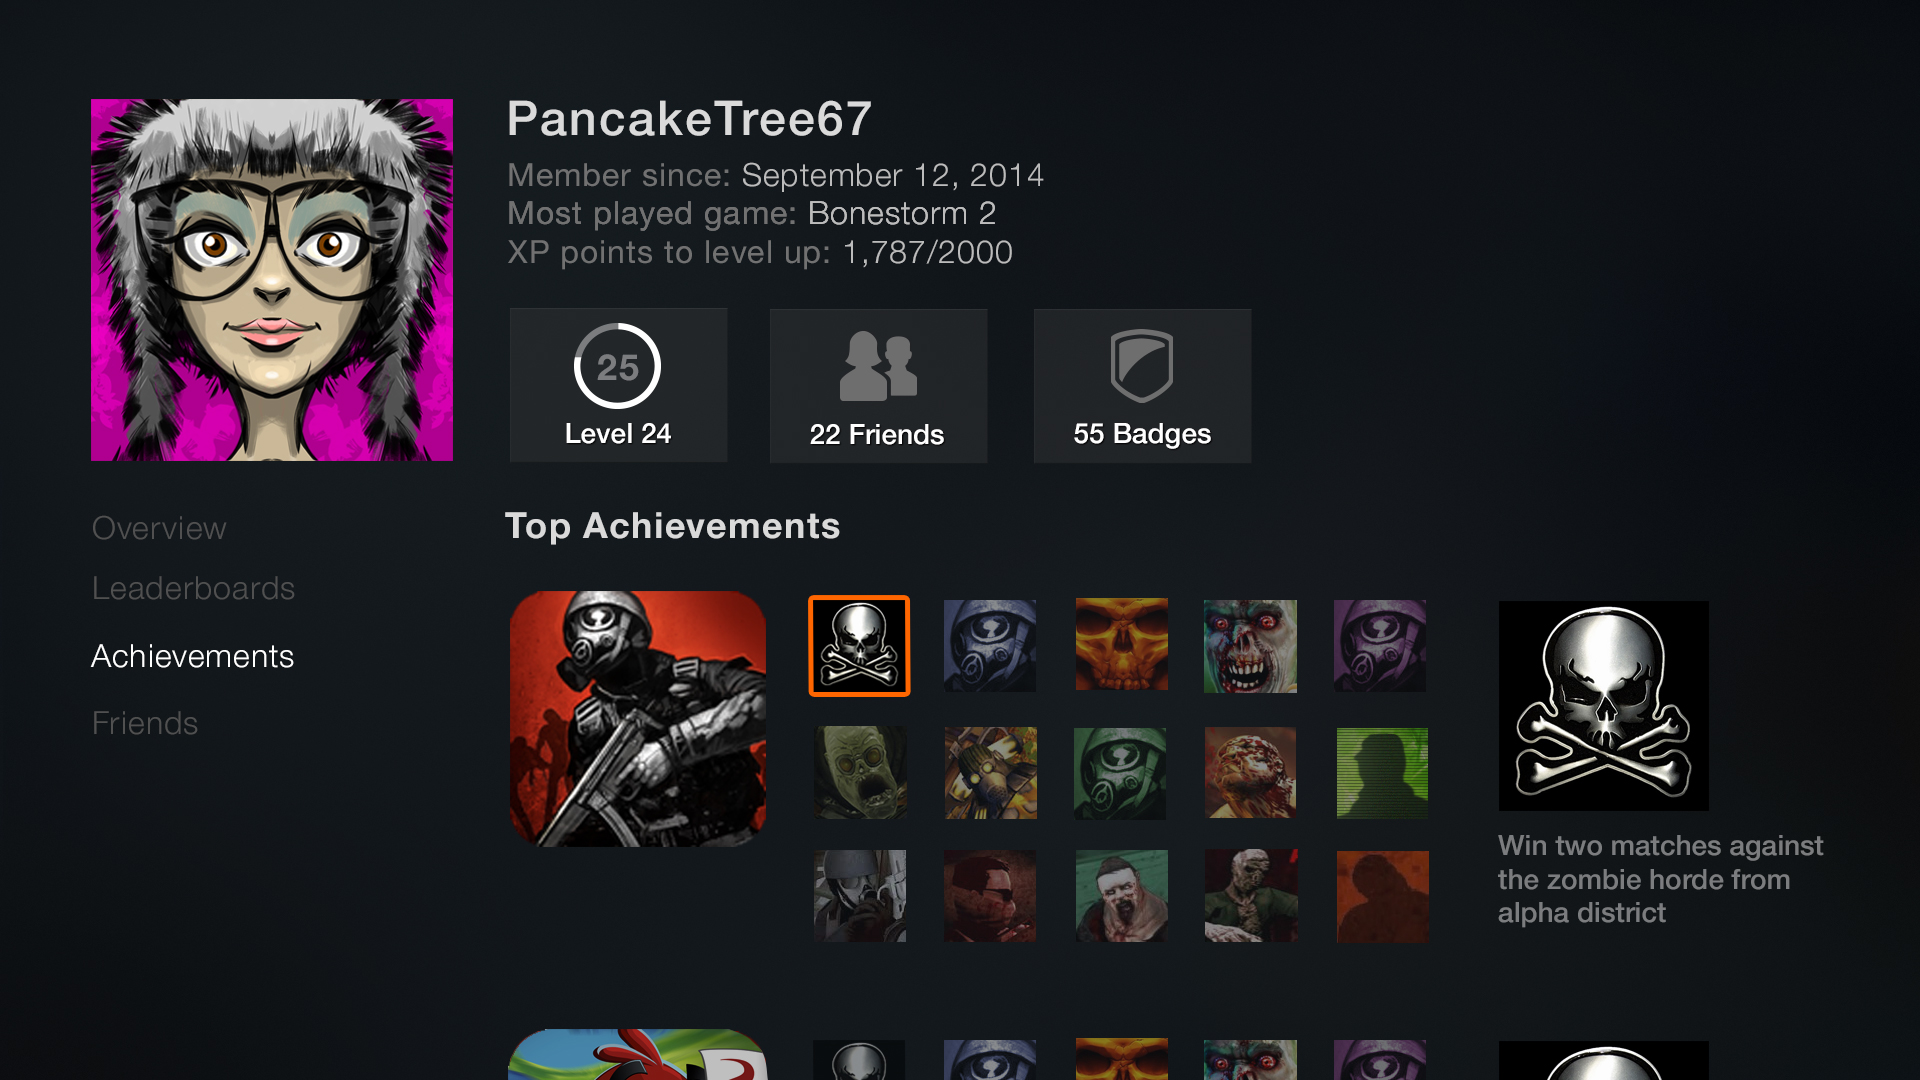 The achievements would scroll down to be as long as needed.